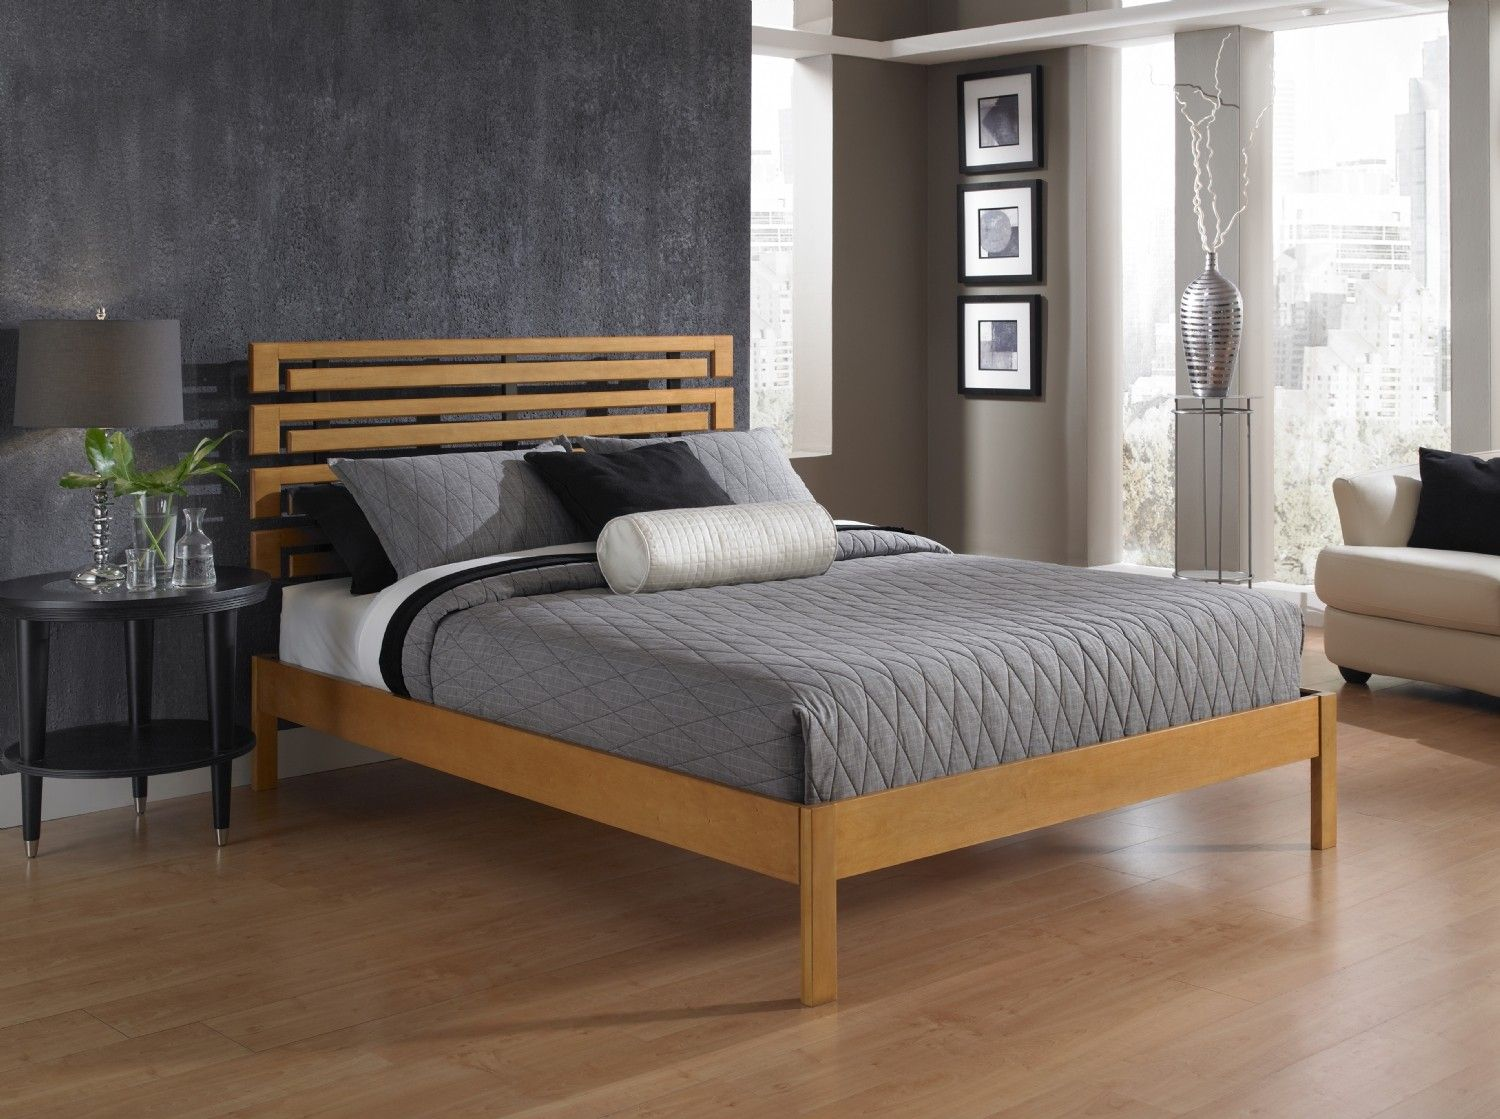 wood frame bed with backboard design Platform bed